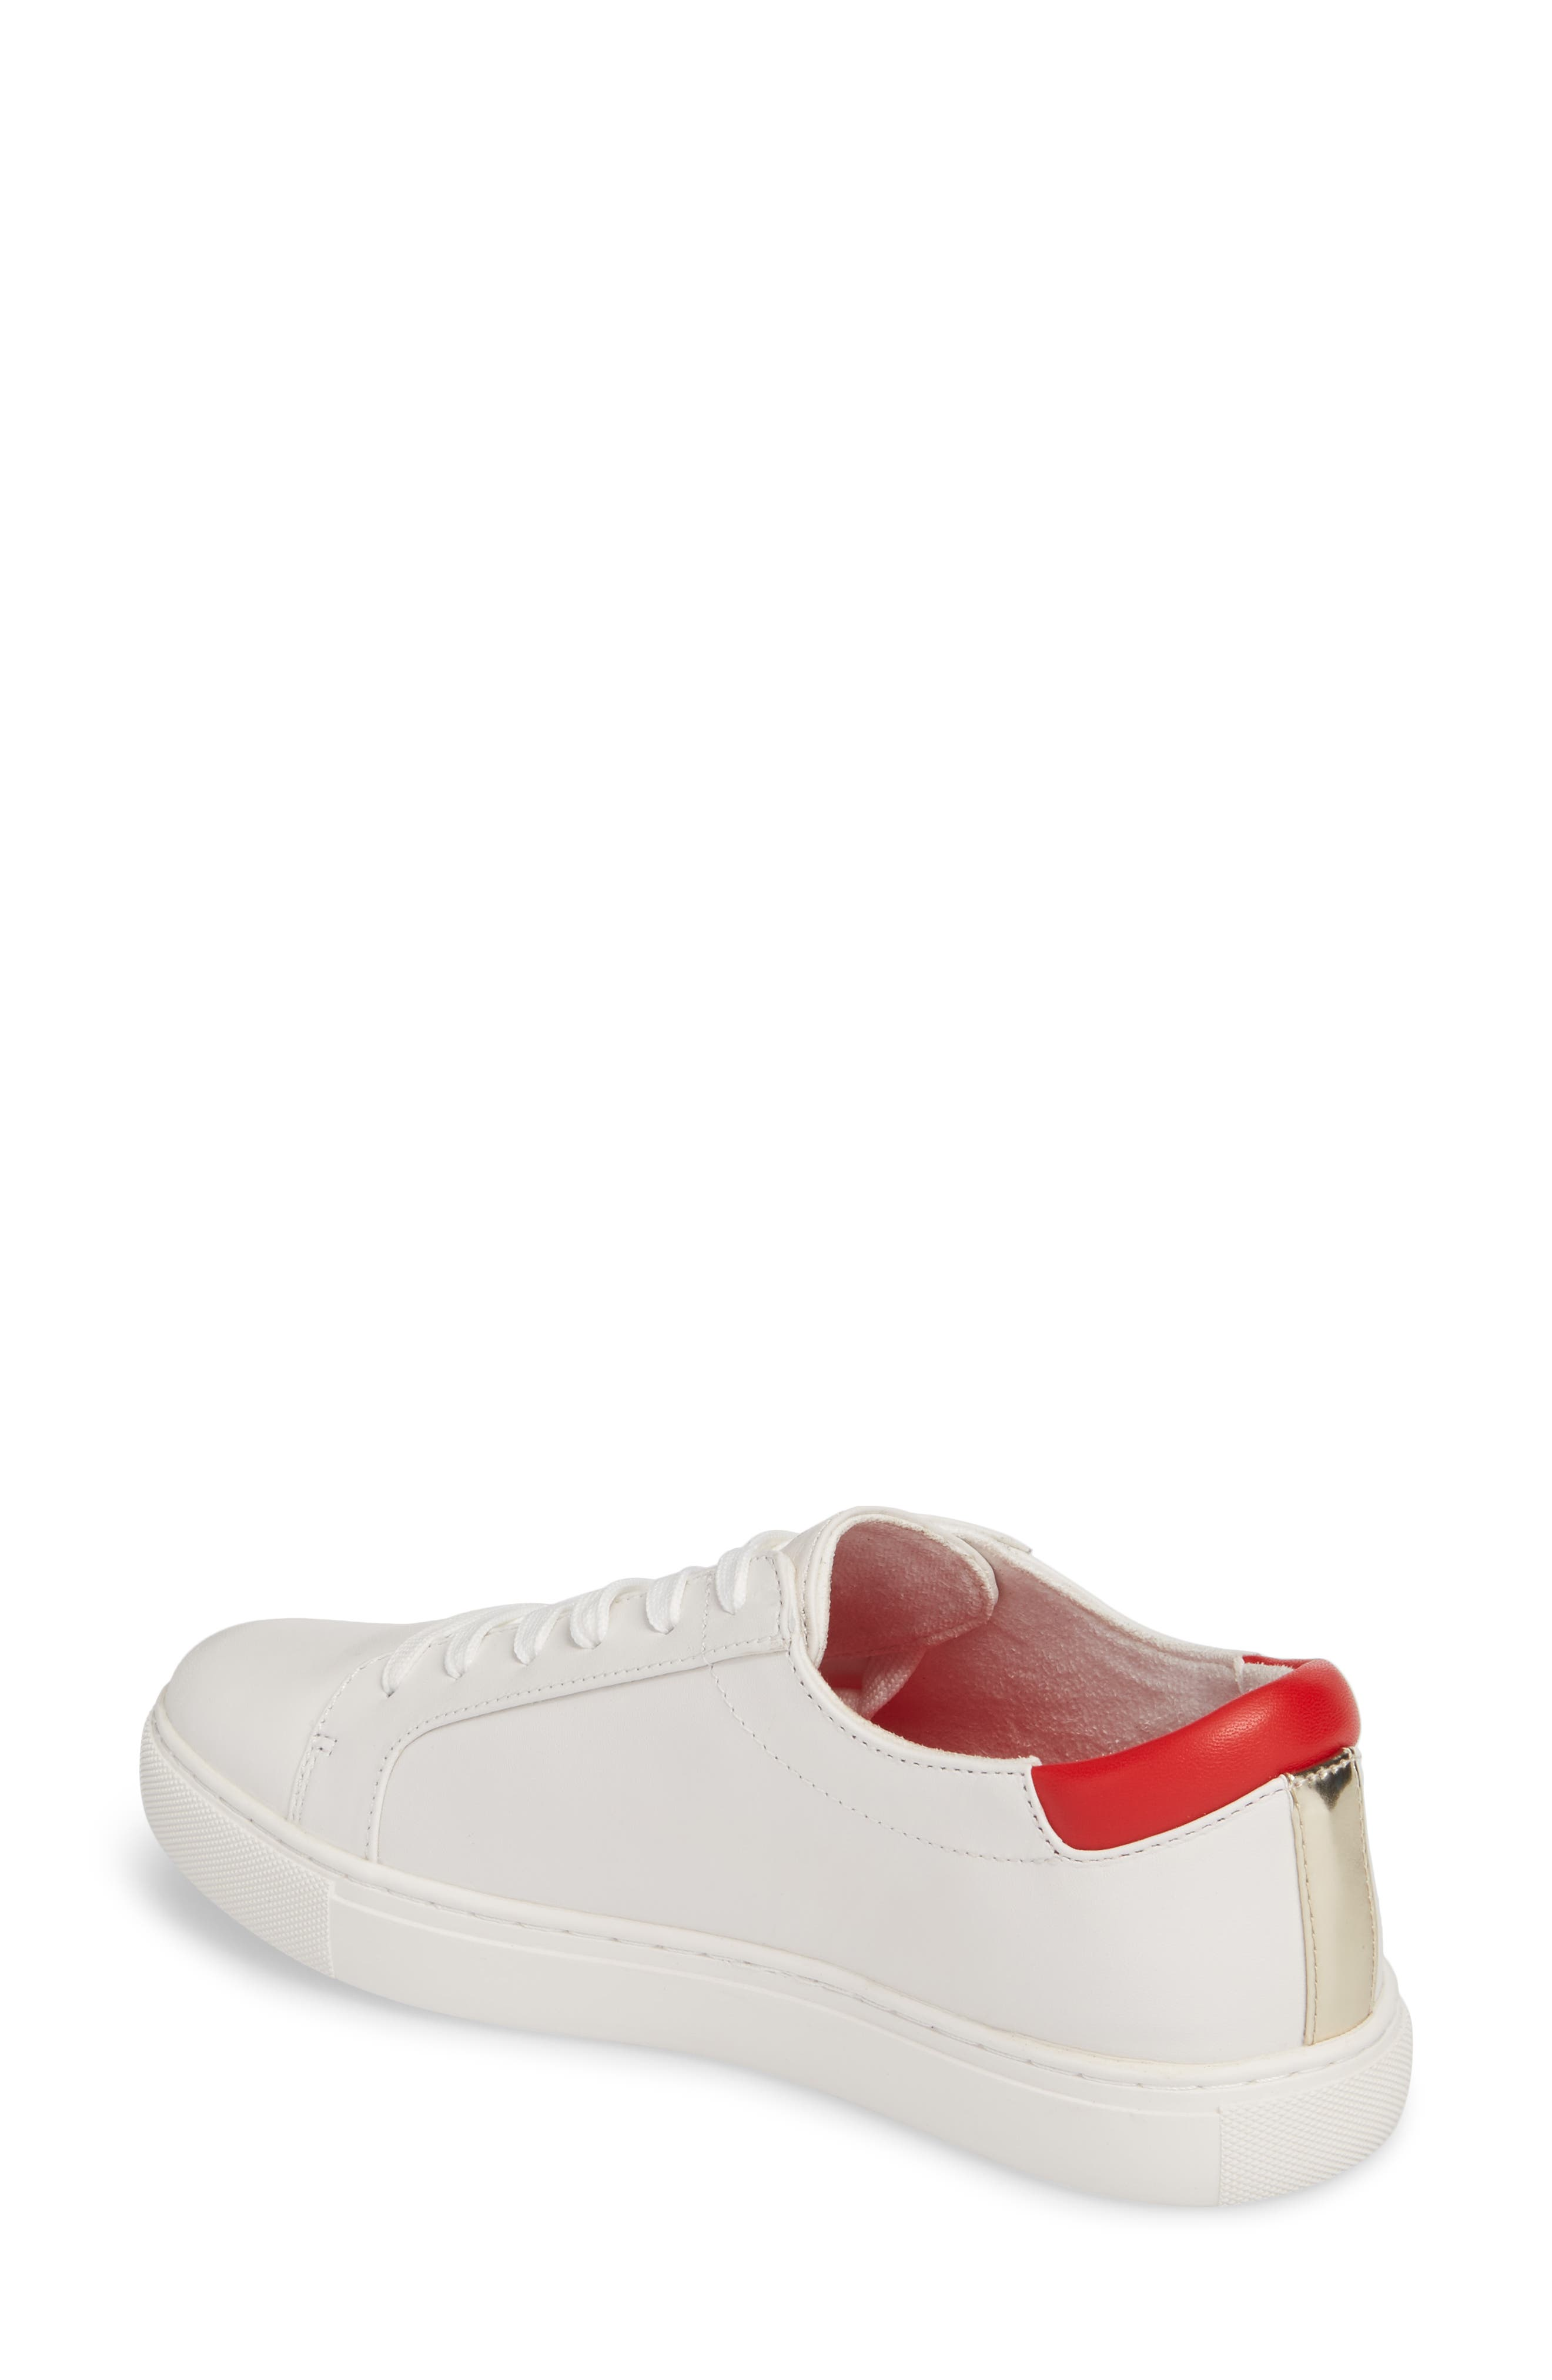 Cam Low Top Sneaker,                             Alternate thumbnail 4, color,